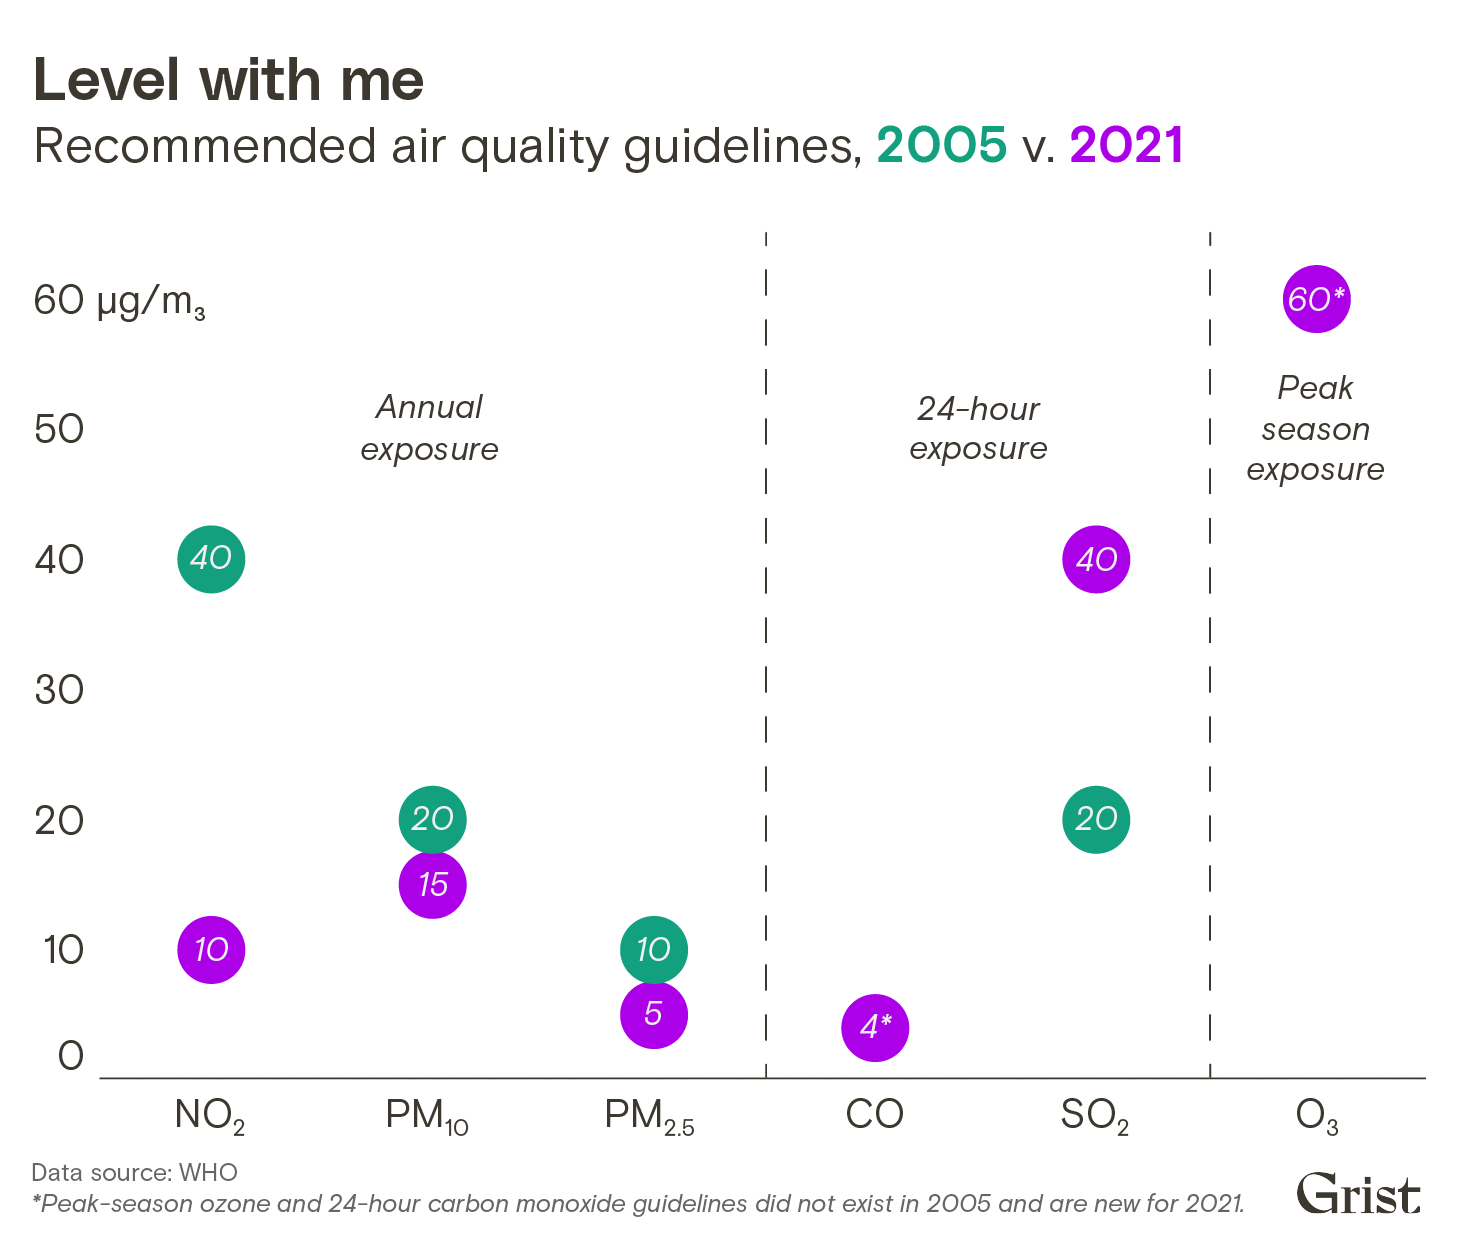 A dot chart showing recommended air quality guidelines from the WHO for 2005 v. 2021. Particulate matter and nitrogen oxide guidelines are stronger, sulfur dioxide guidelines are weaker, and the organization released new guidelines for carbon monoxide and peak-season ozone exposure.